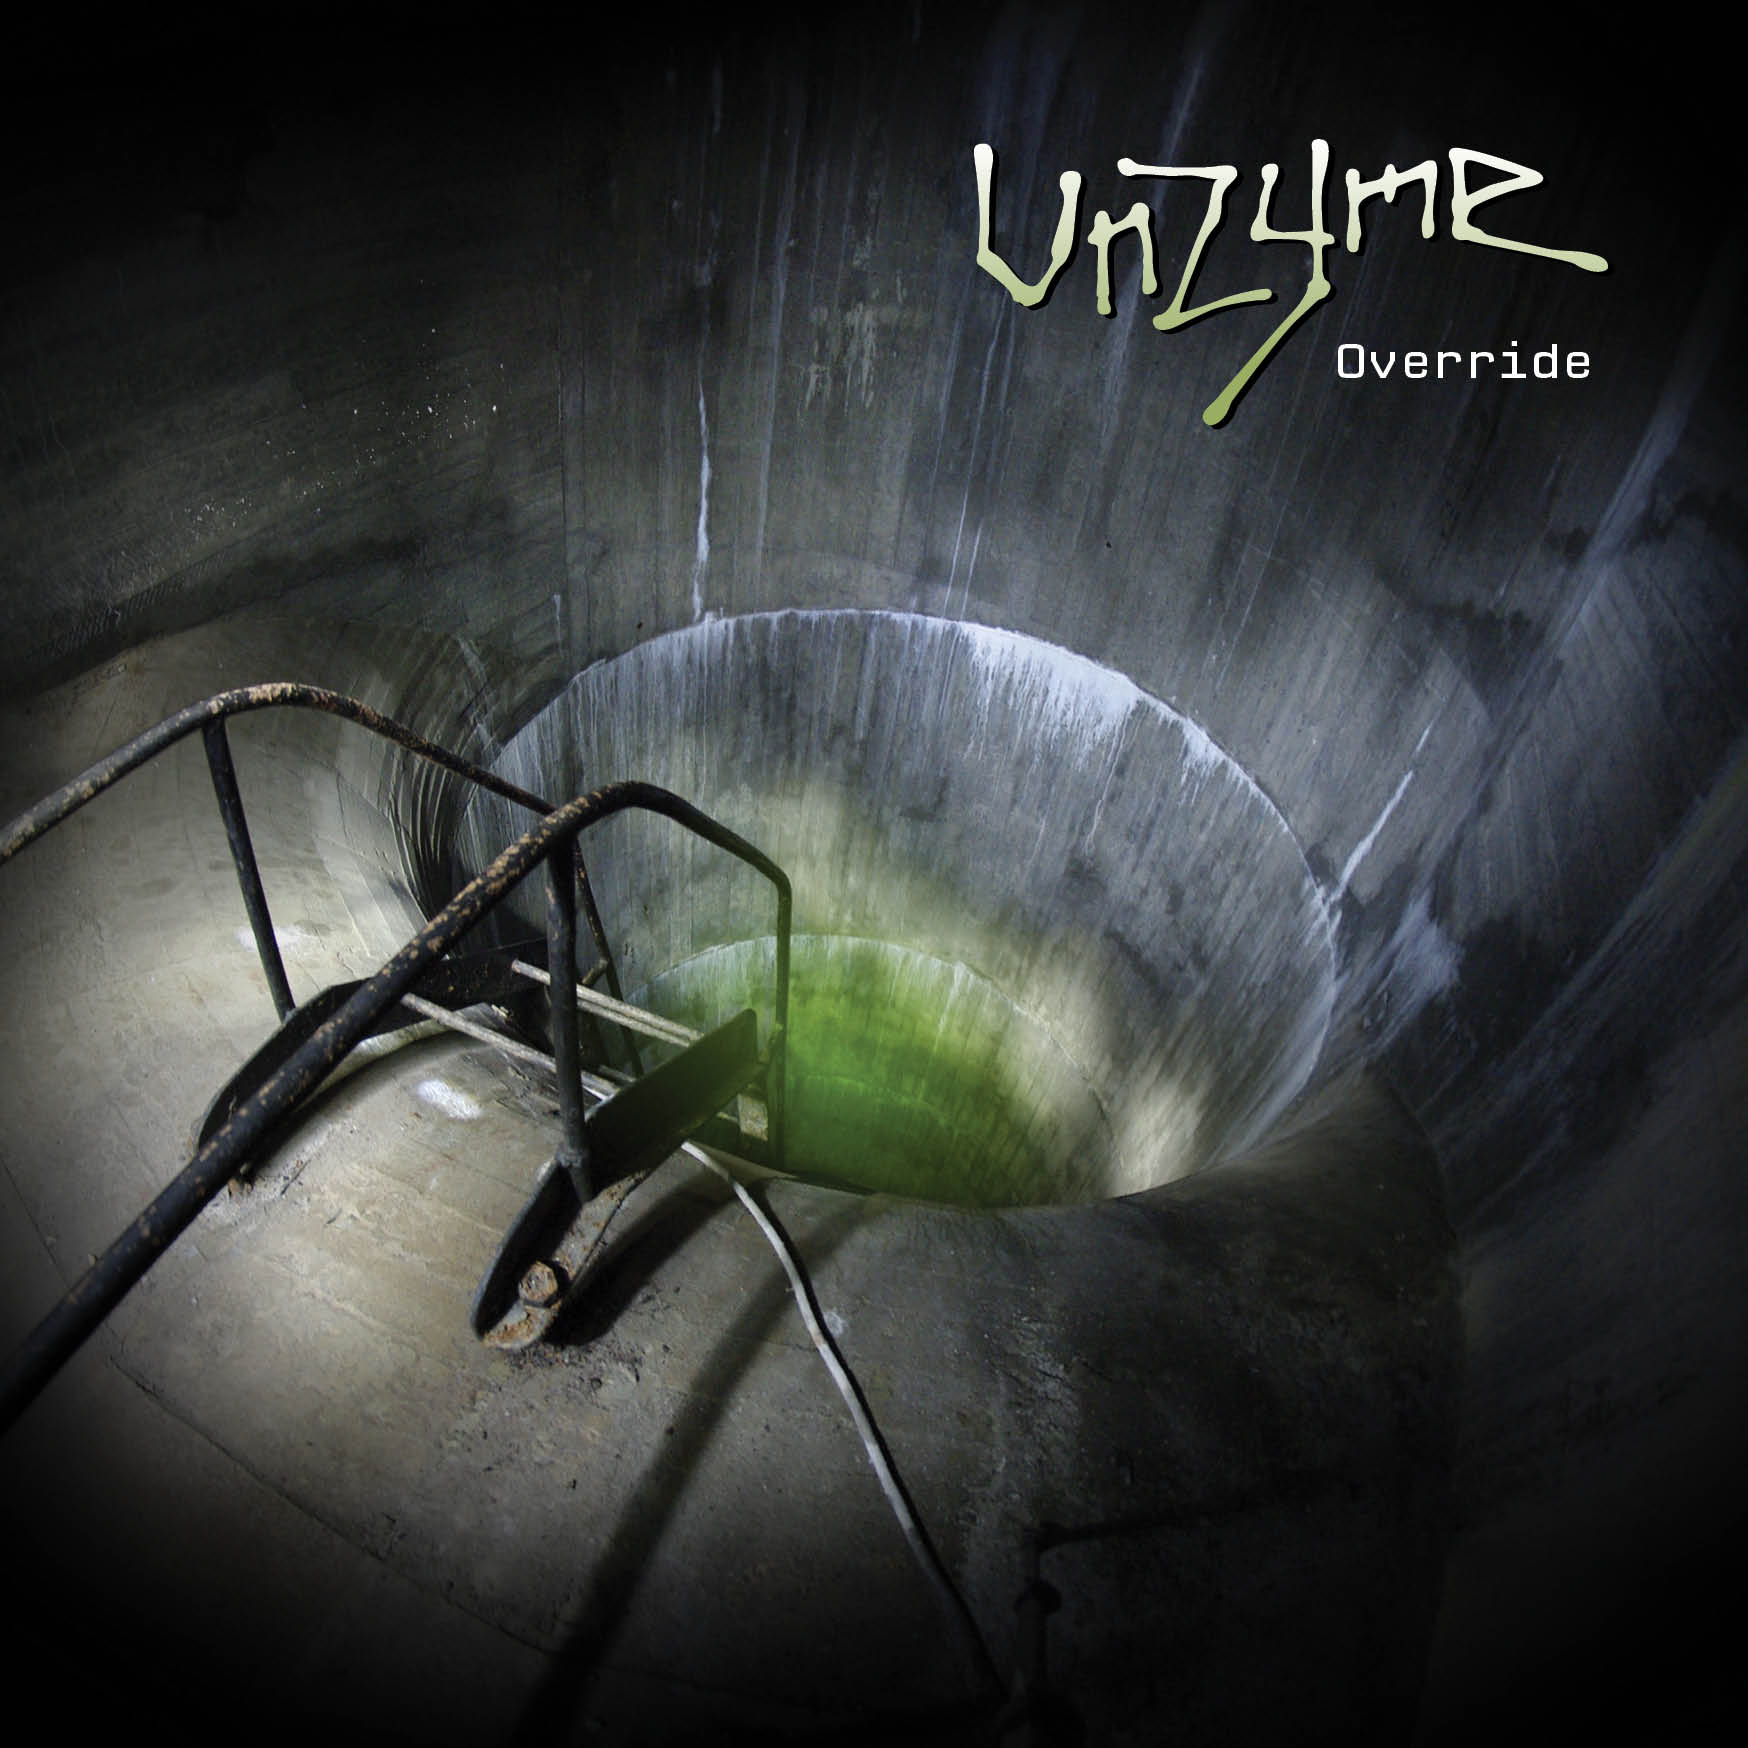 Unzyme's second album, Override, to be released on January 30th